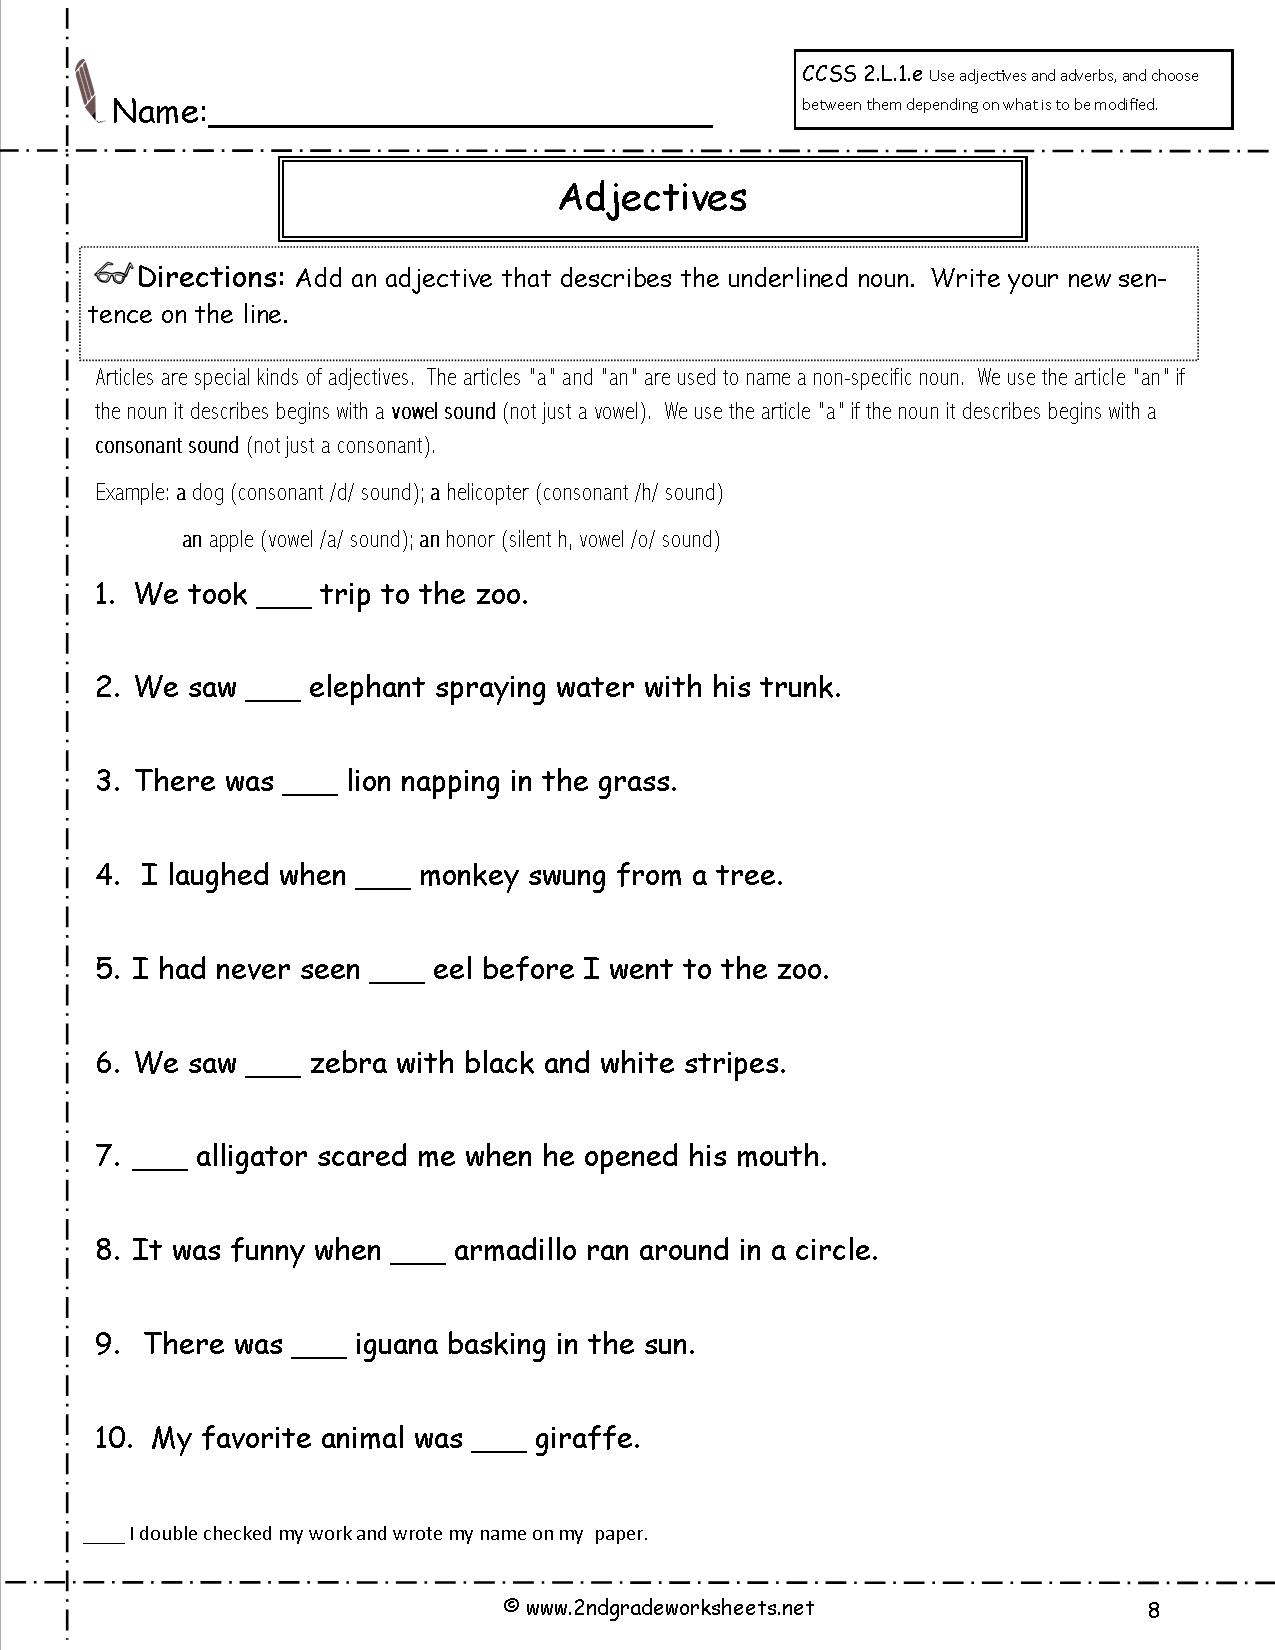 16 Best Images Of Shurley Grammar Worksheets